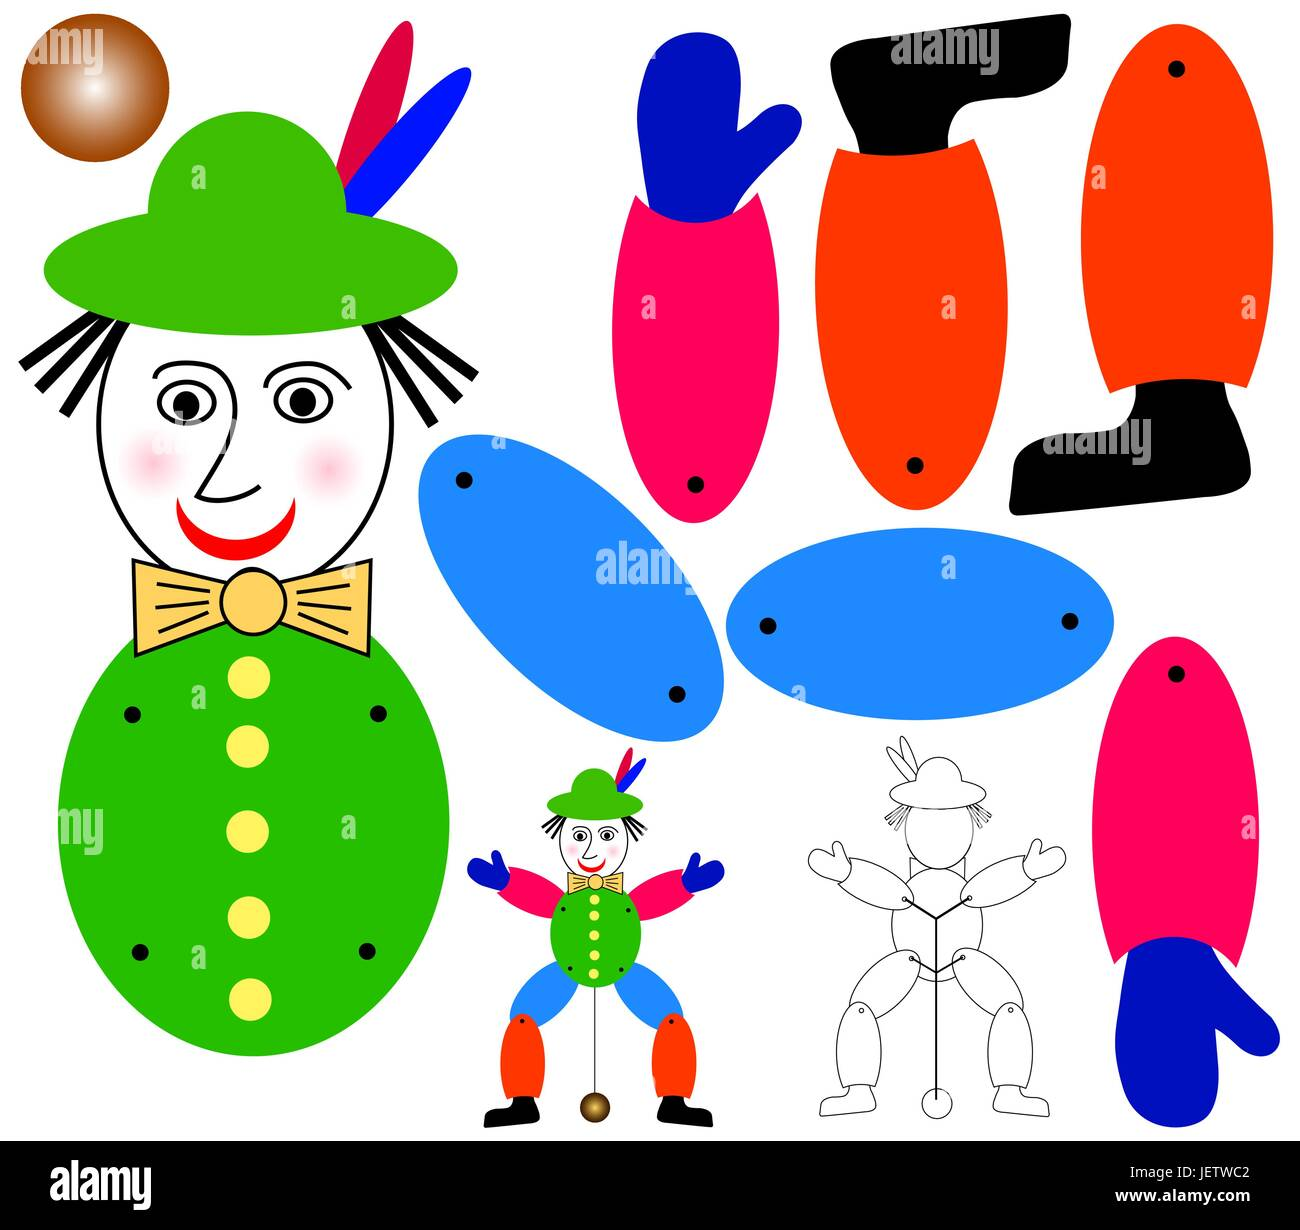 marionette for crafting - indemnified vector - Stock Vector